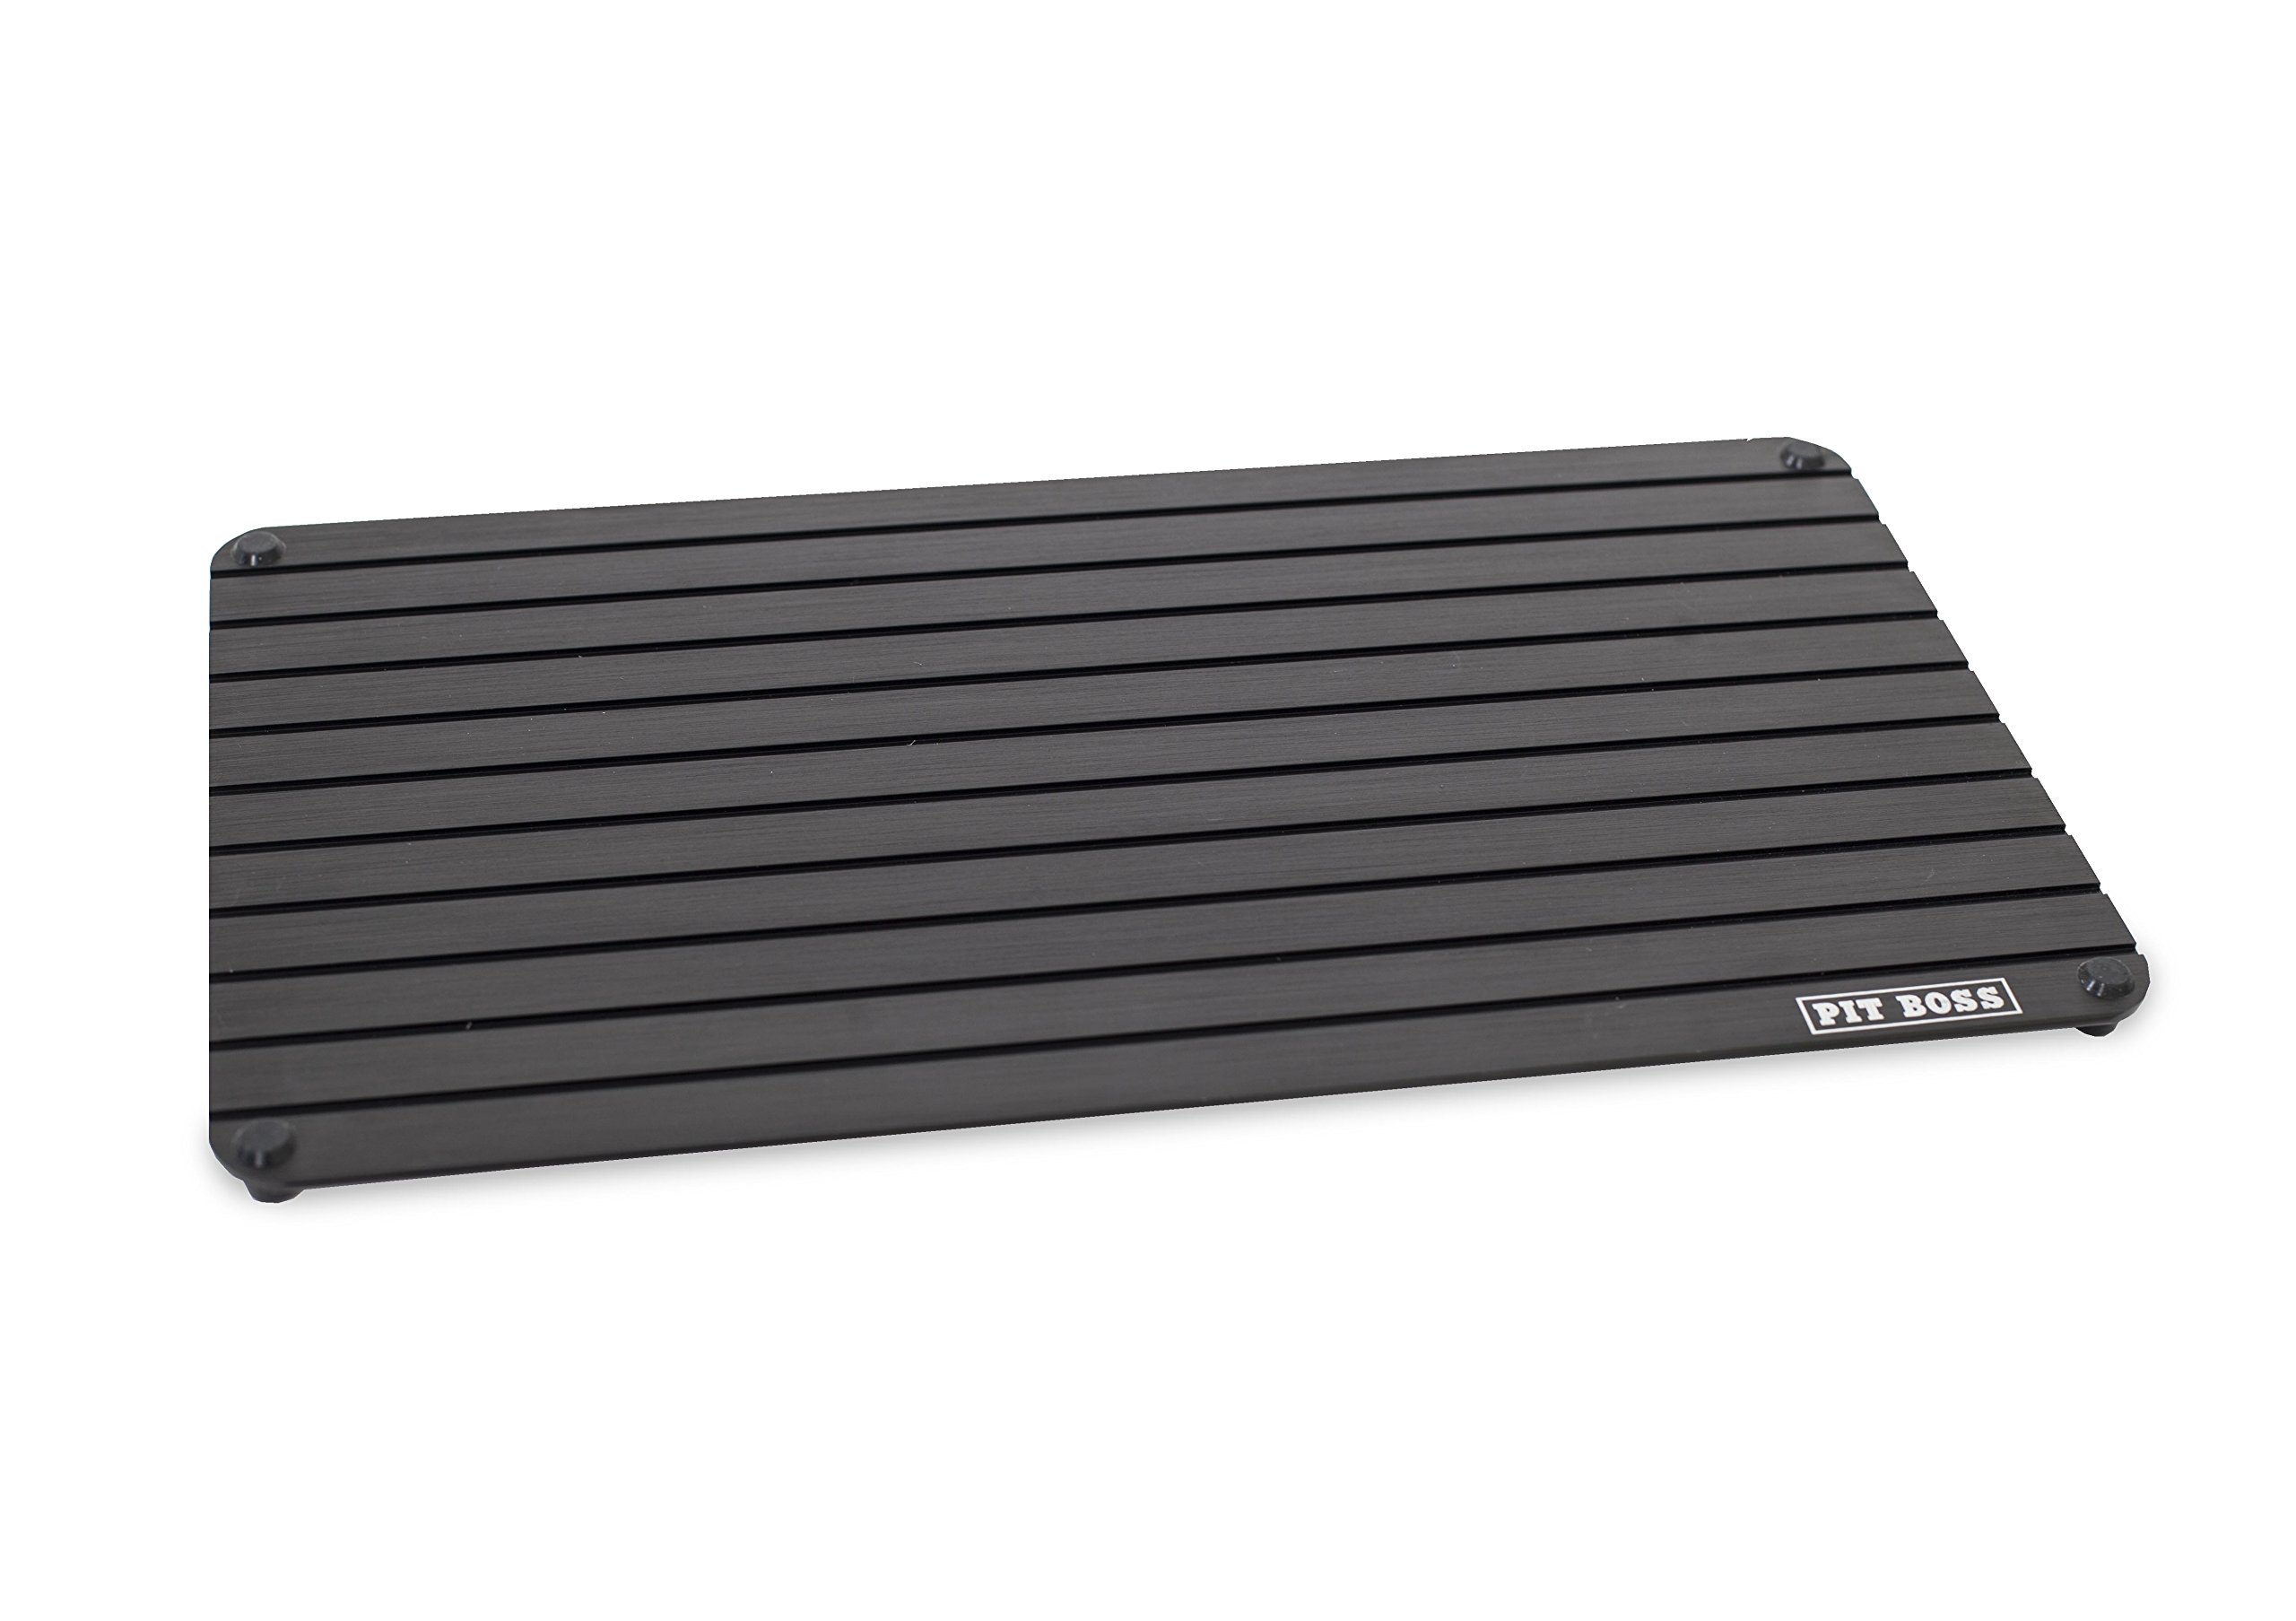 Pit Boss Grills 67276 Bbq Defrosting Tray